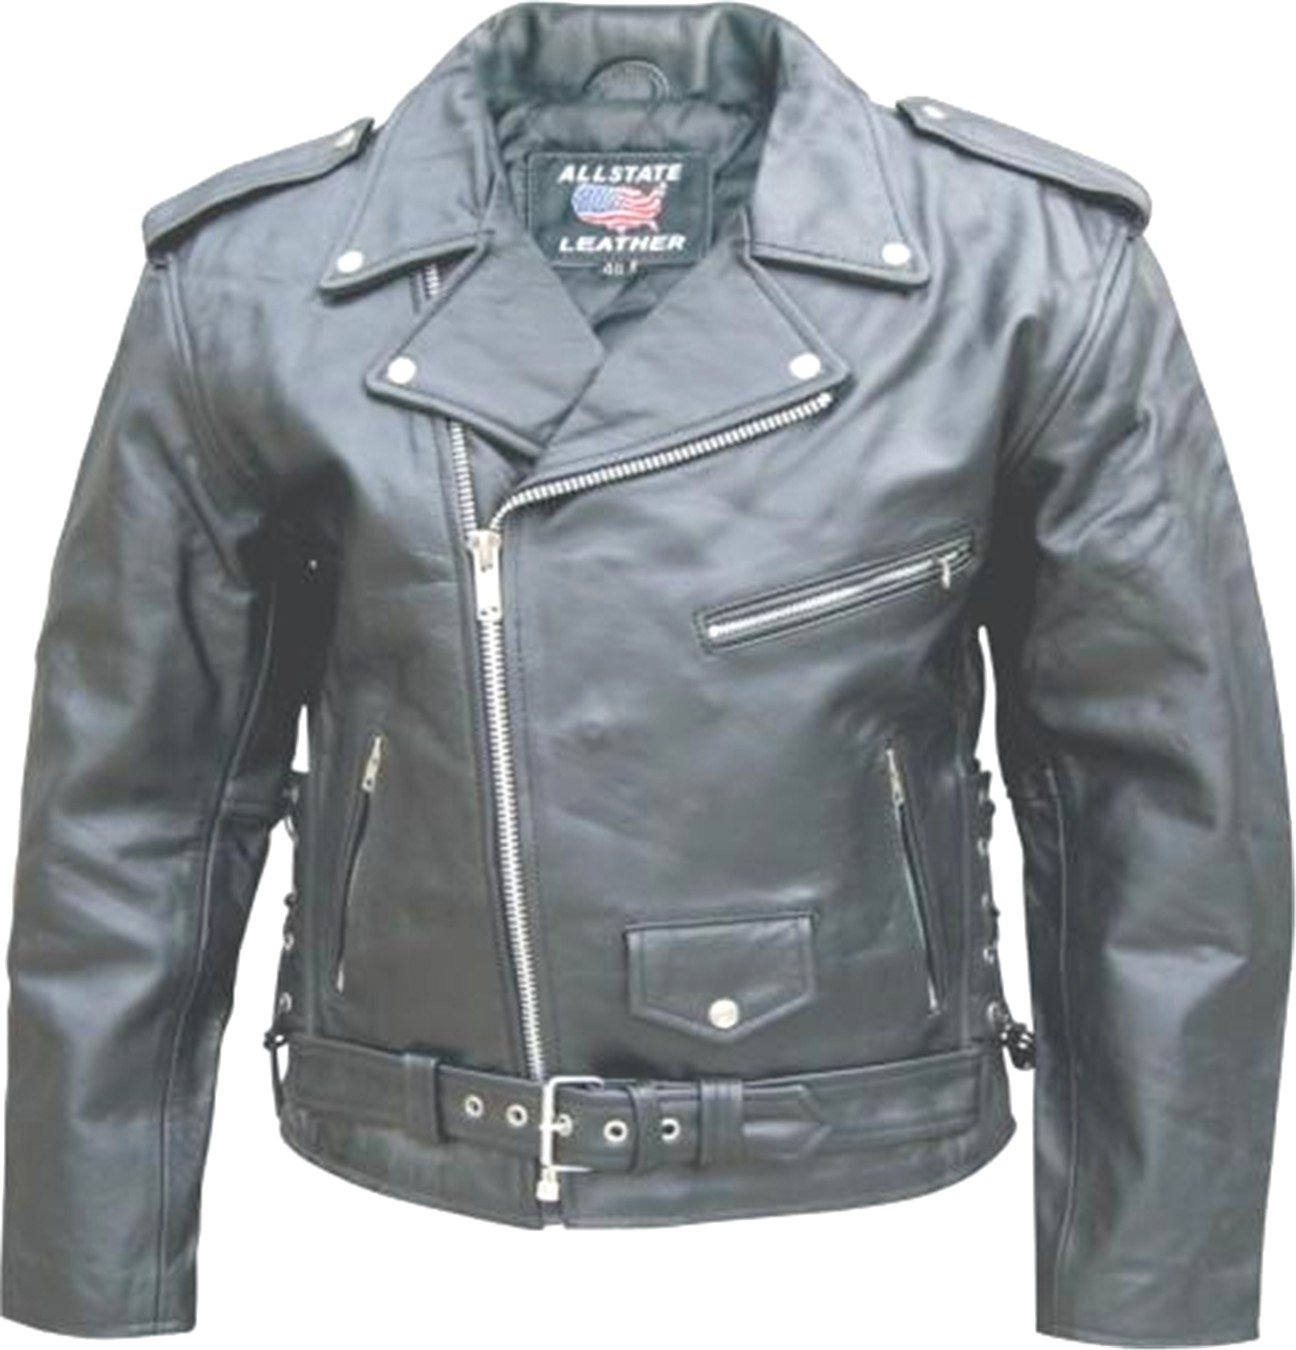 ab8b63b5592 Men s Black Cowhide Leather Classic Motorcycle Jacket with Zip-out liner   side  laces